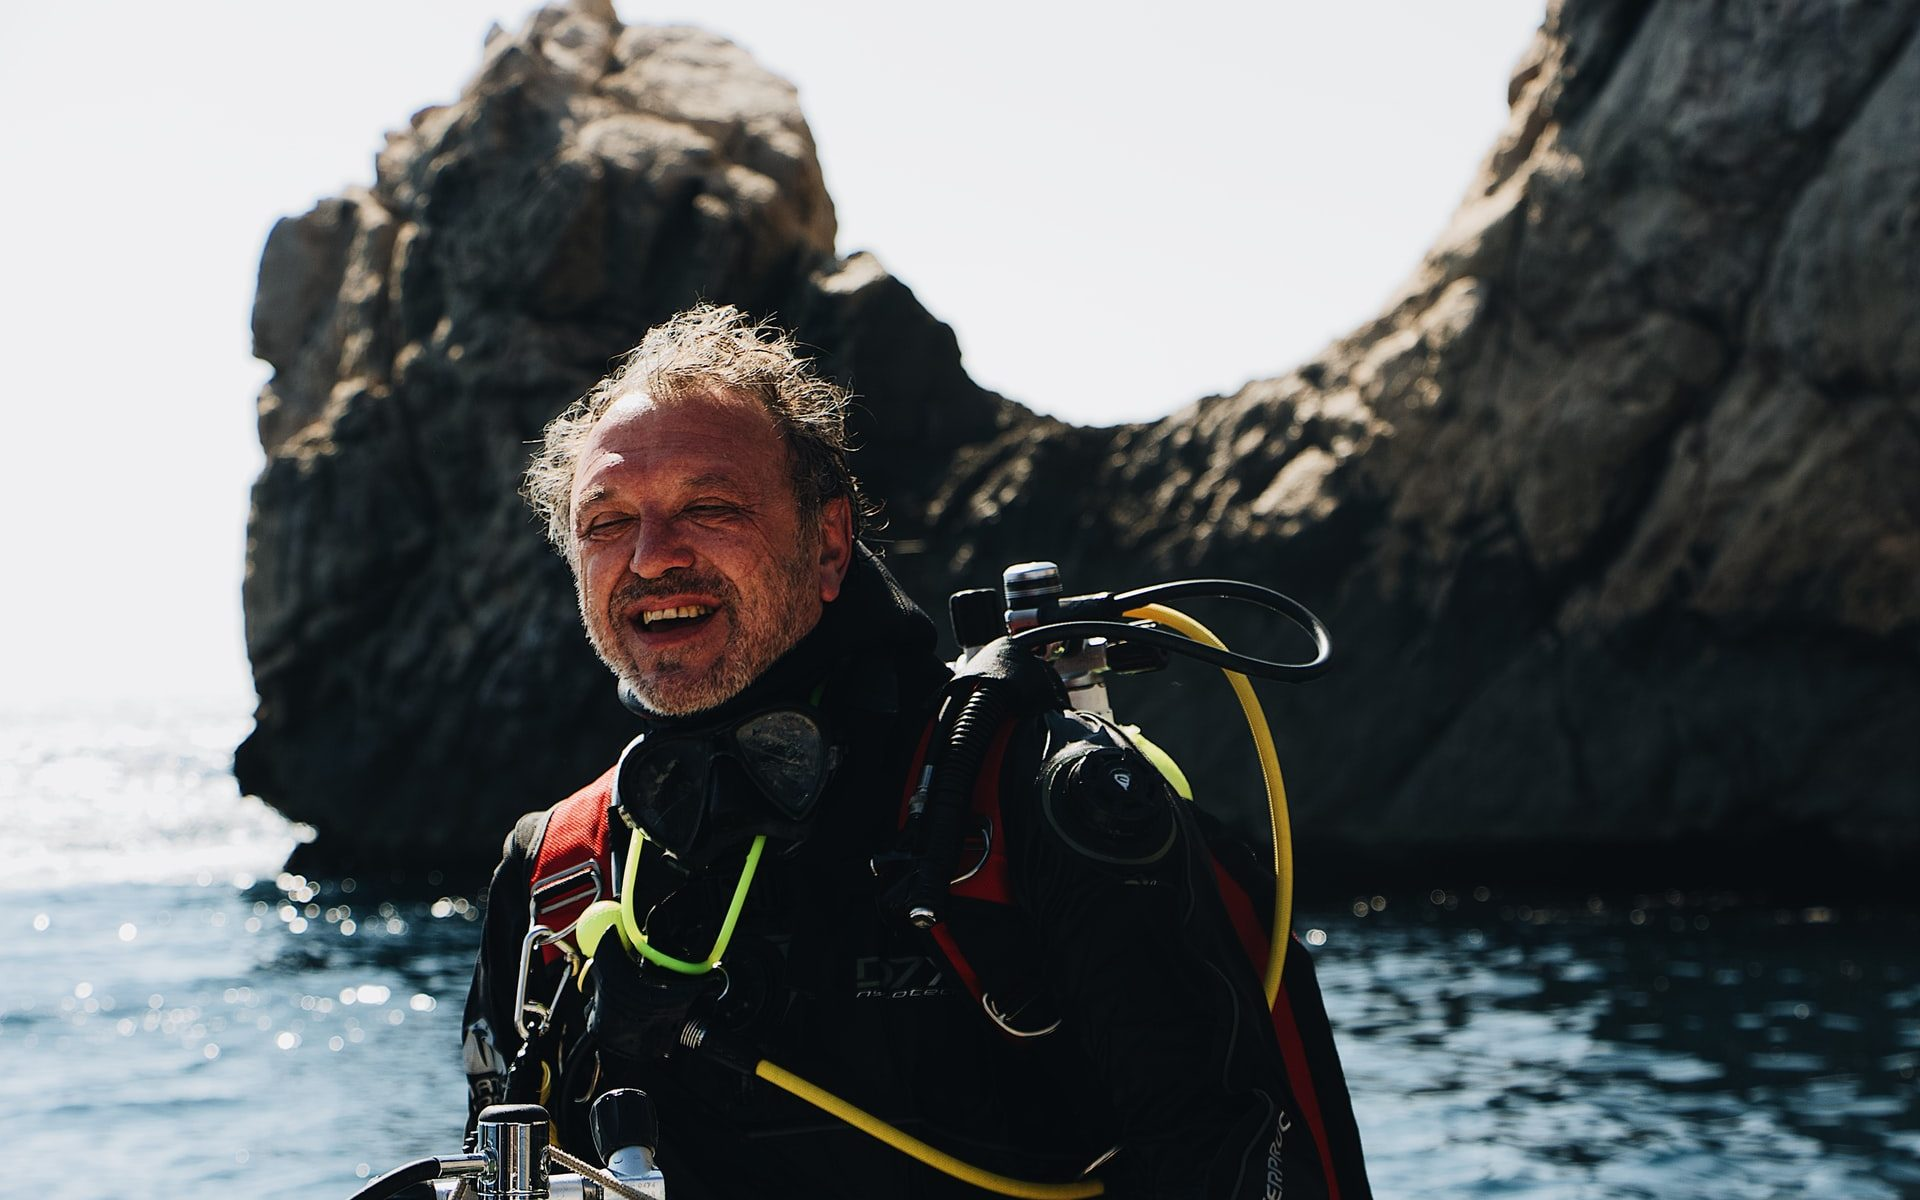 At What Age Should You Stop Scuba Diving